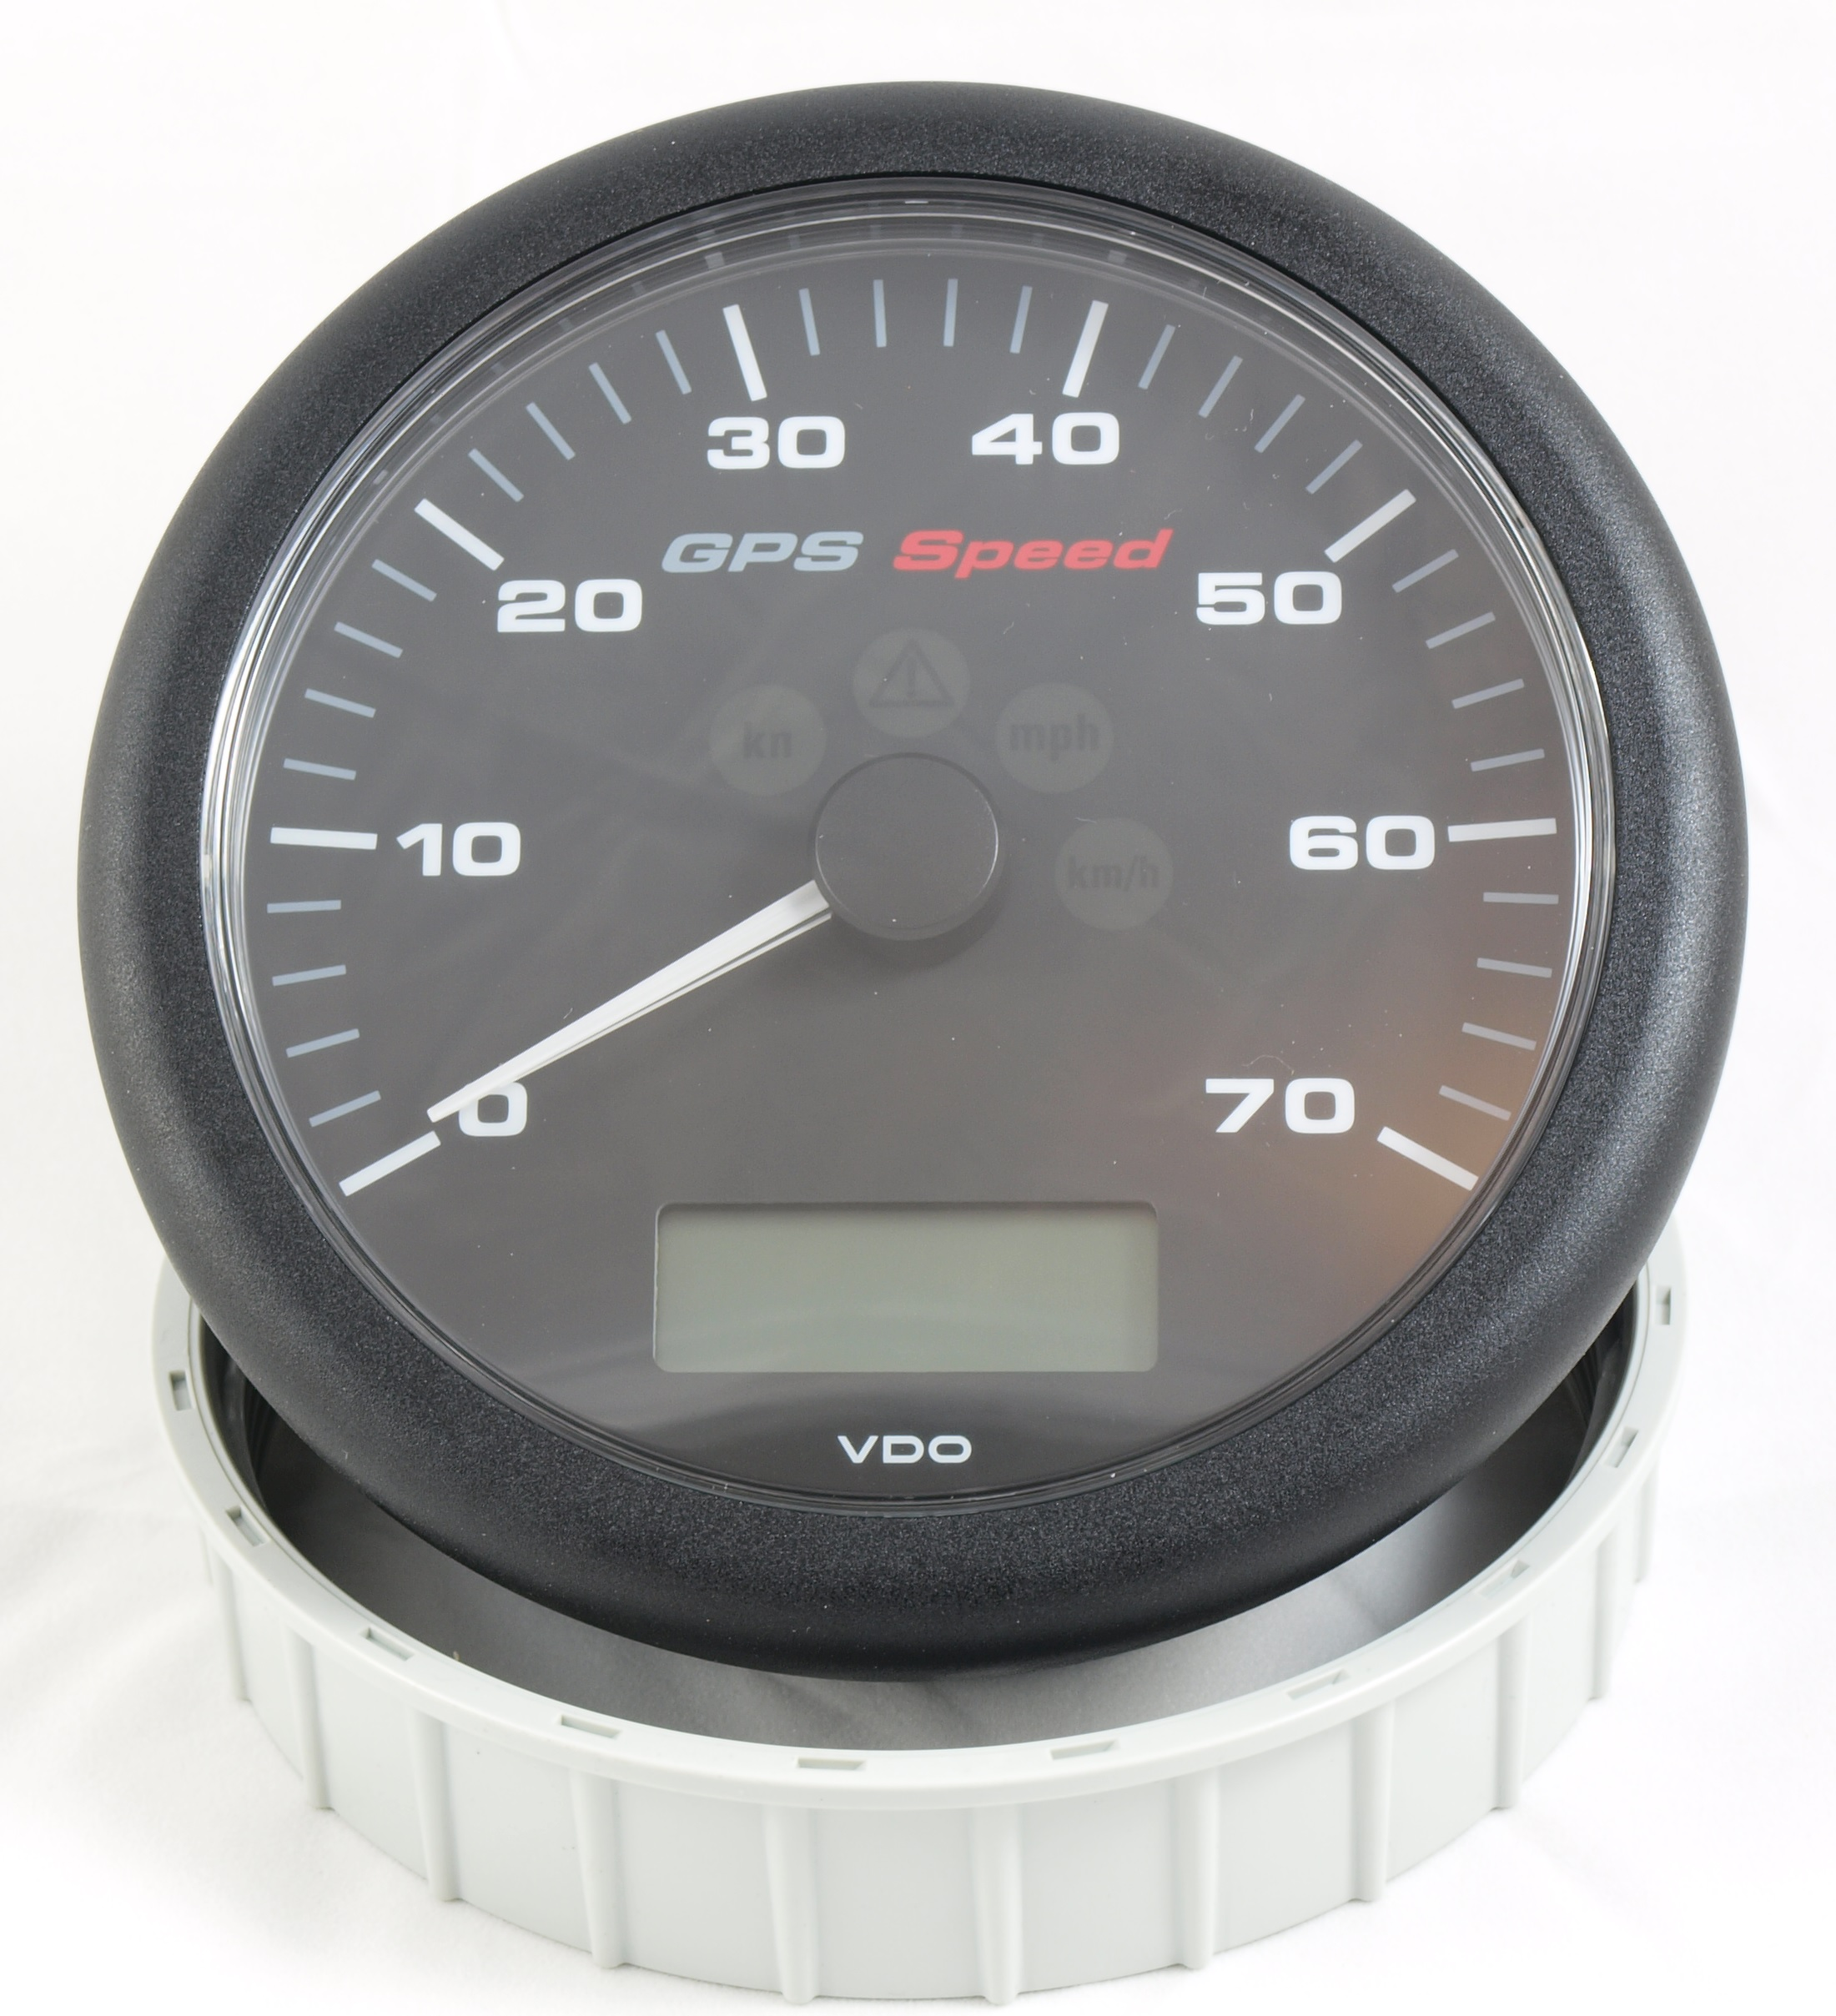 vdo viewline gps compteur de vitesse indicateur sumlog 70kn ebay. Black Bedroom Furniture Sets. Home Design Ideas